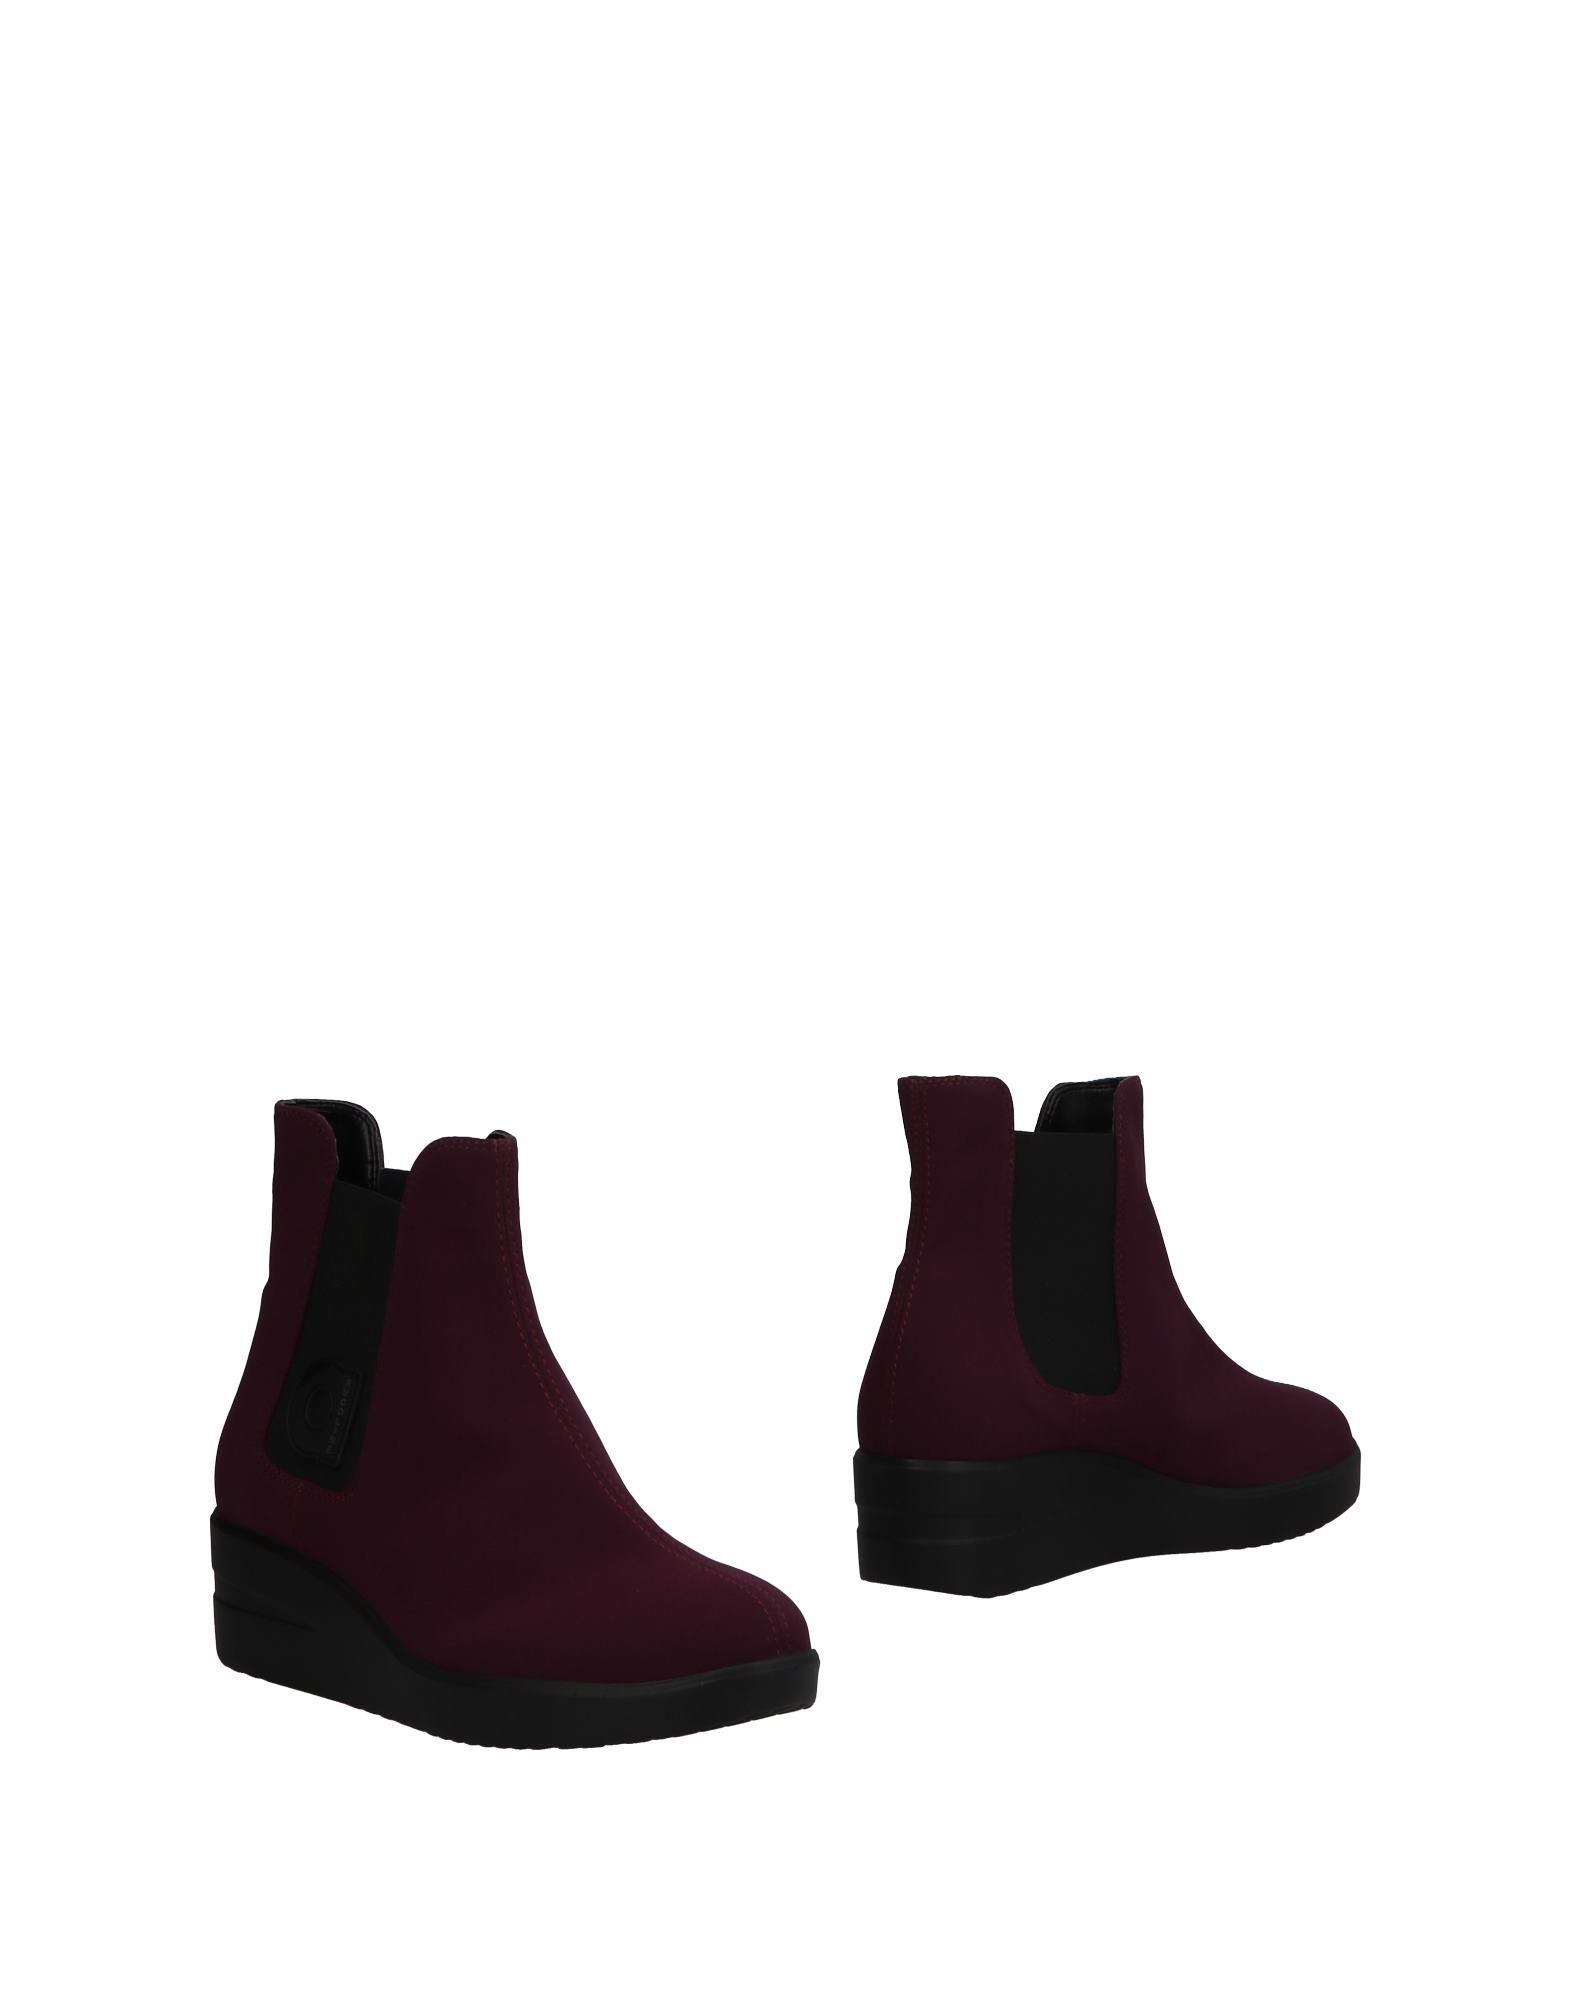 Agile By Rucoline Rucoline By Chelsea Boots Damen  11496582OV 99ed09